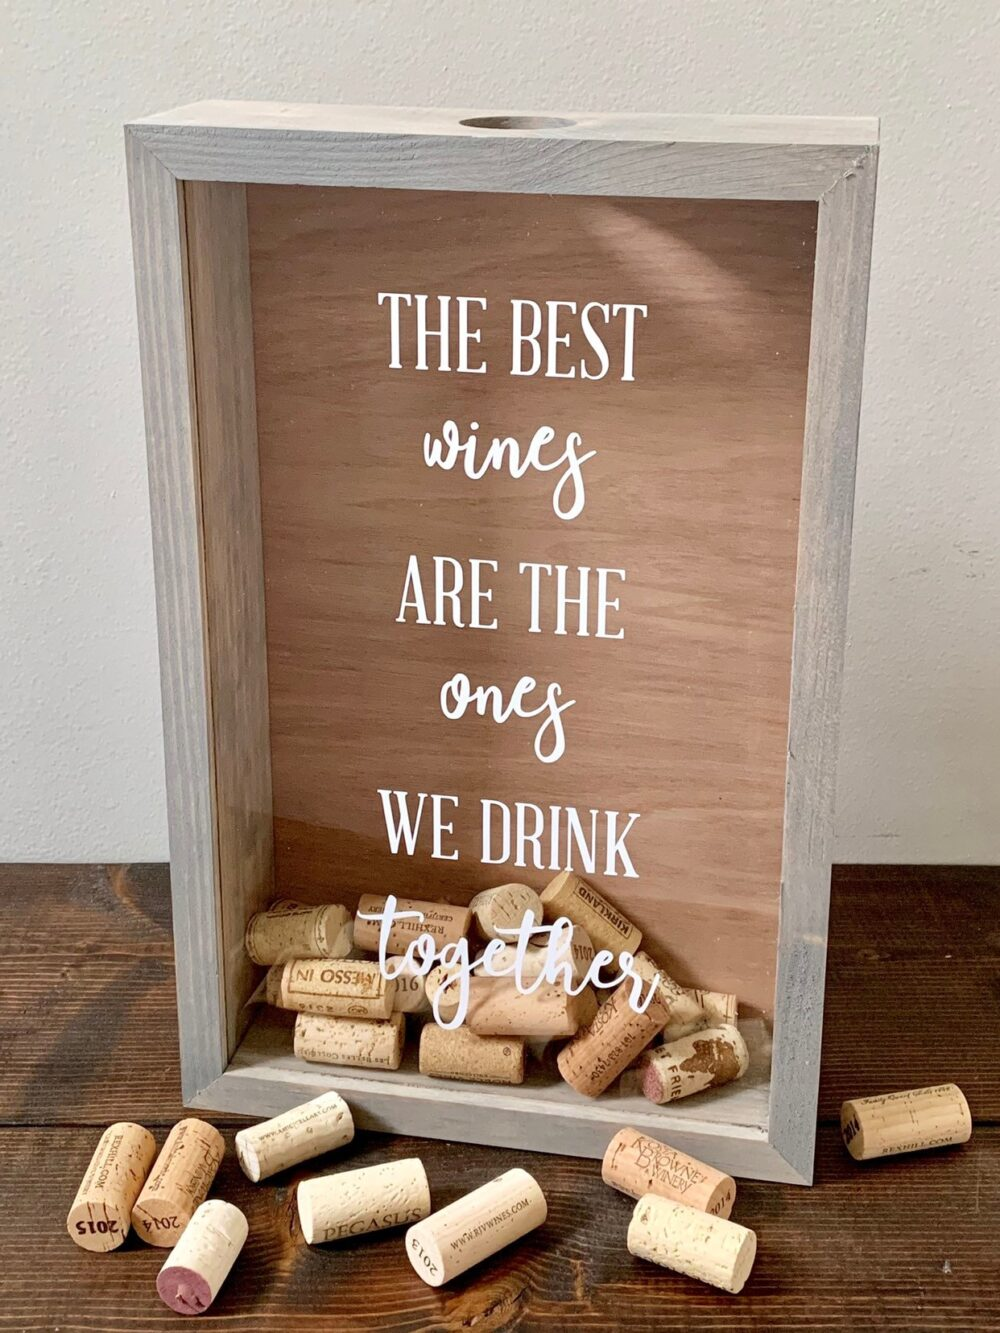 Wine Cork Holder | Wood Wedding Decor Bar Display Box For Corks The Best Wines Are Ones We Drink Together